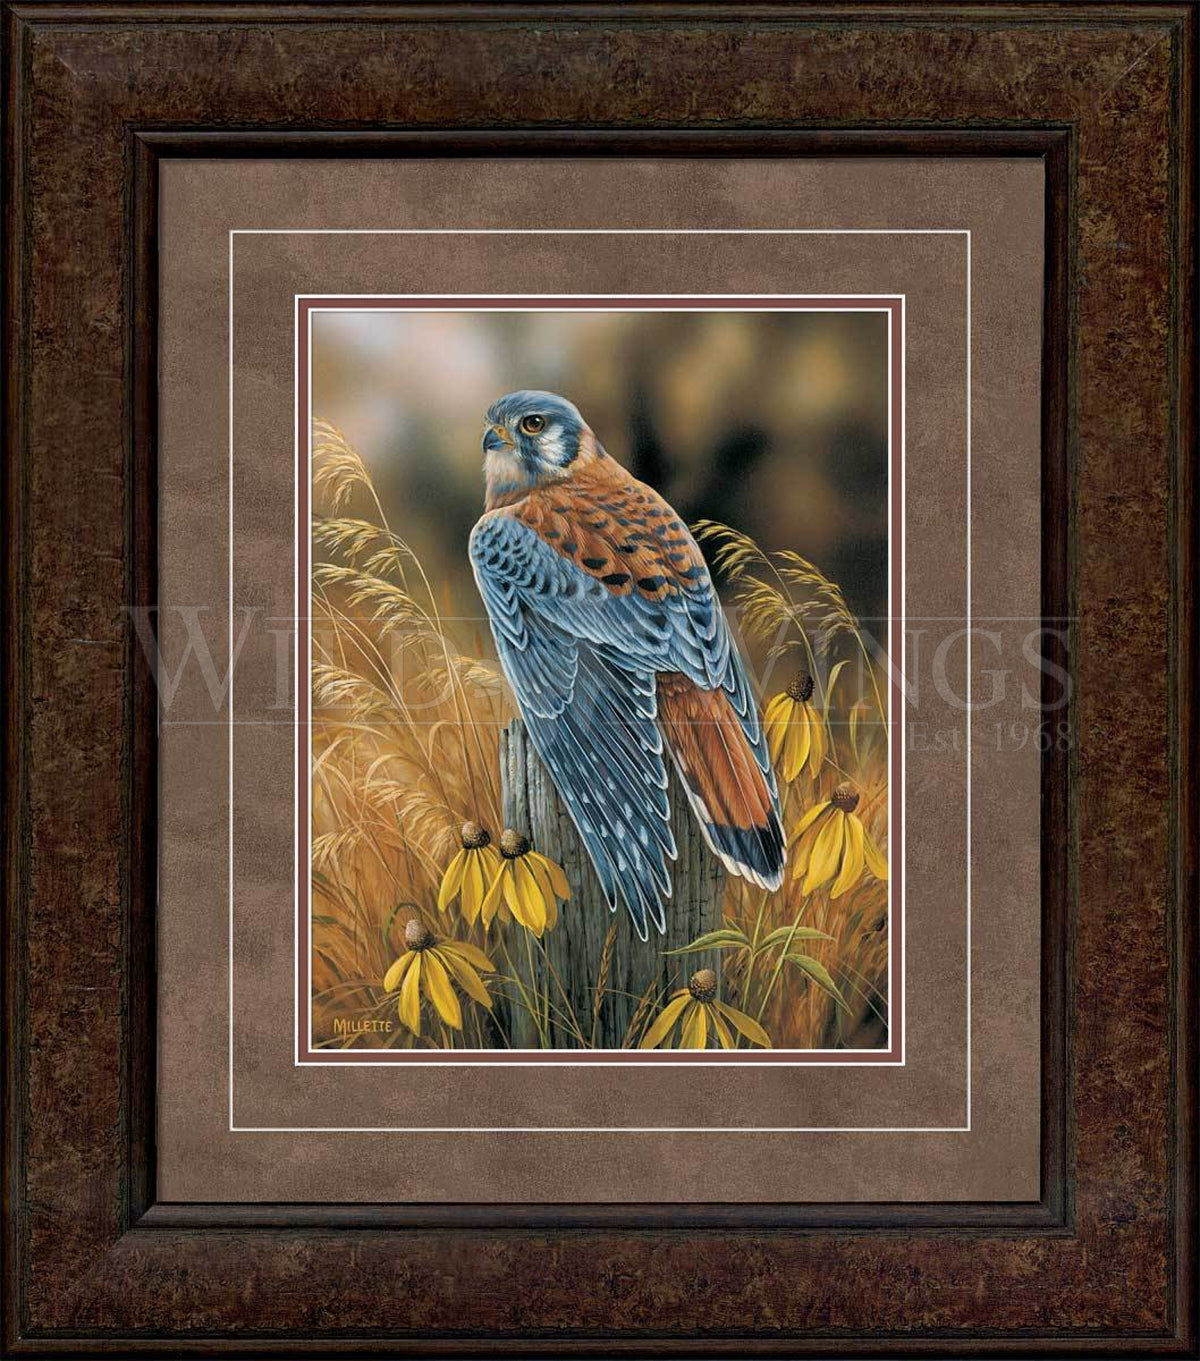 <I>Fencepost Perch&mdash;kestrel</i> Framed Print<Br/>22.75H X 19.75W Art Collection